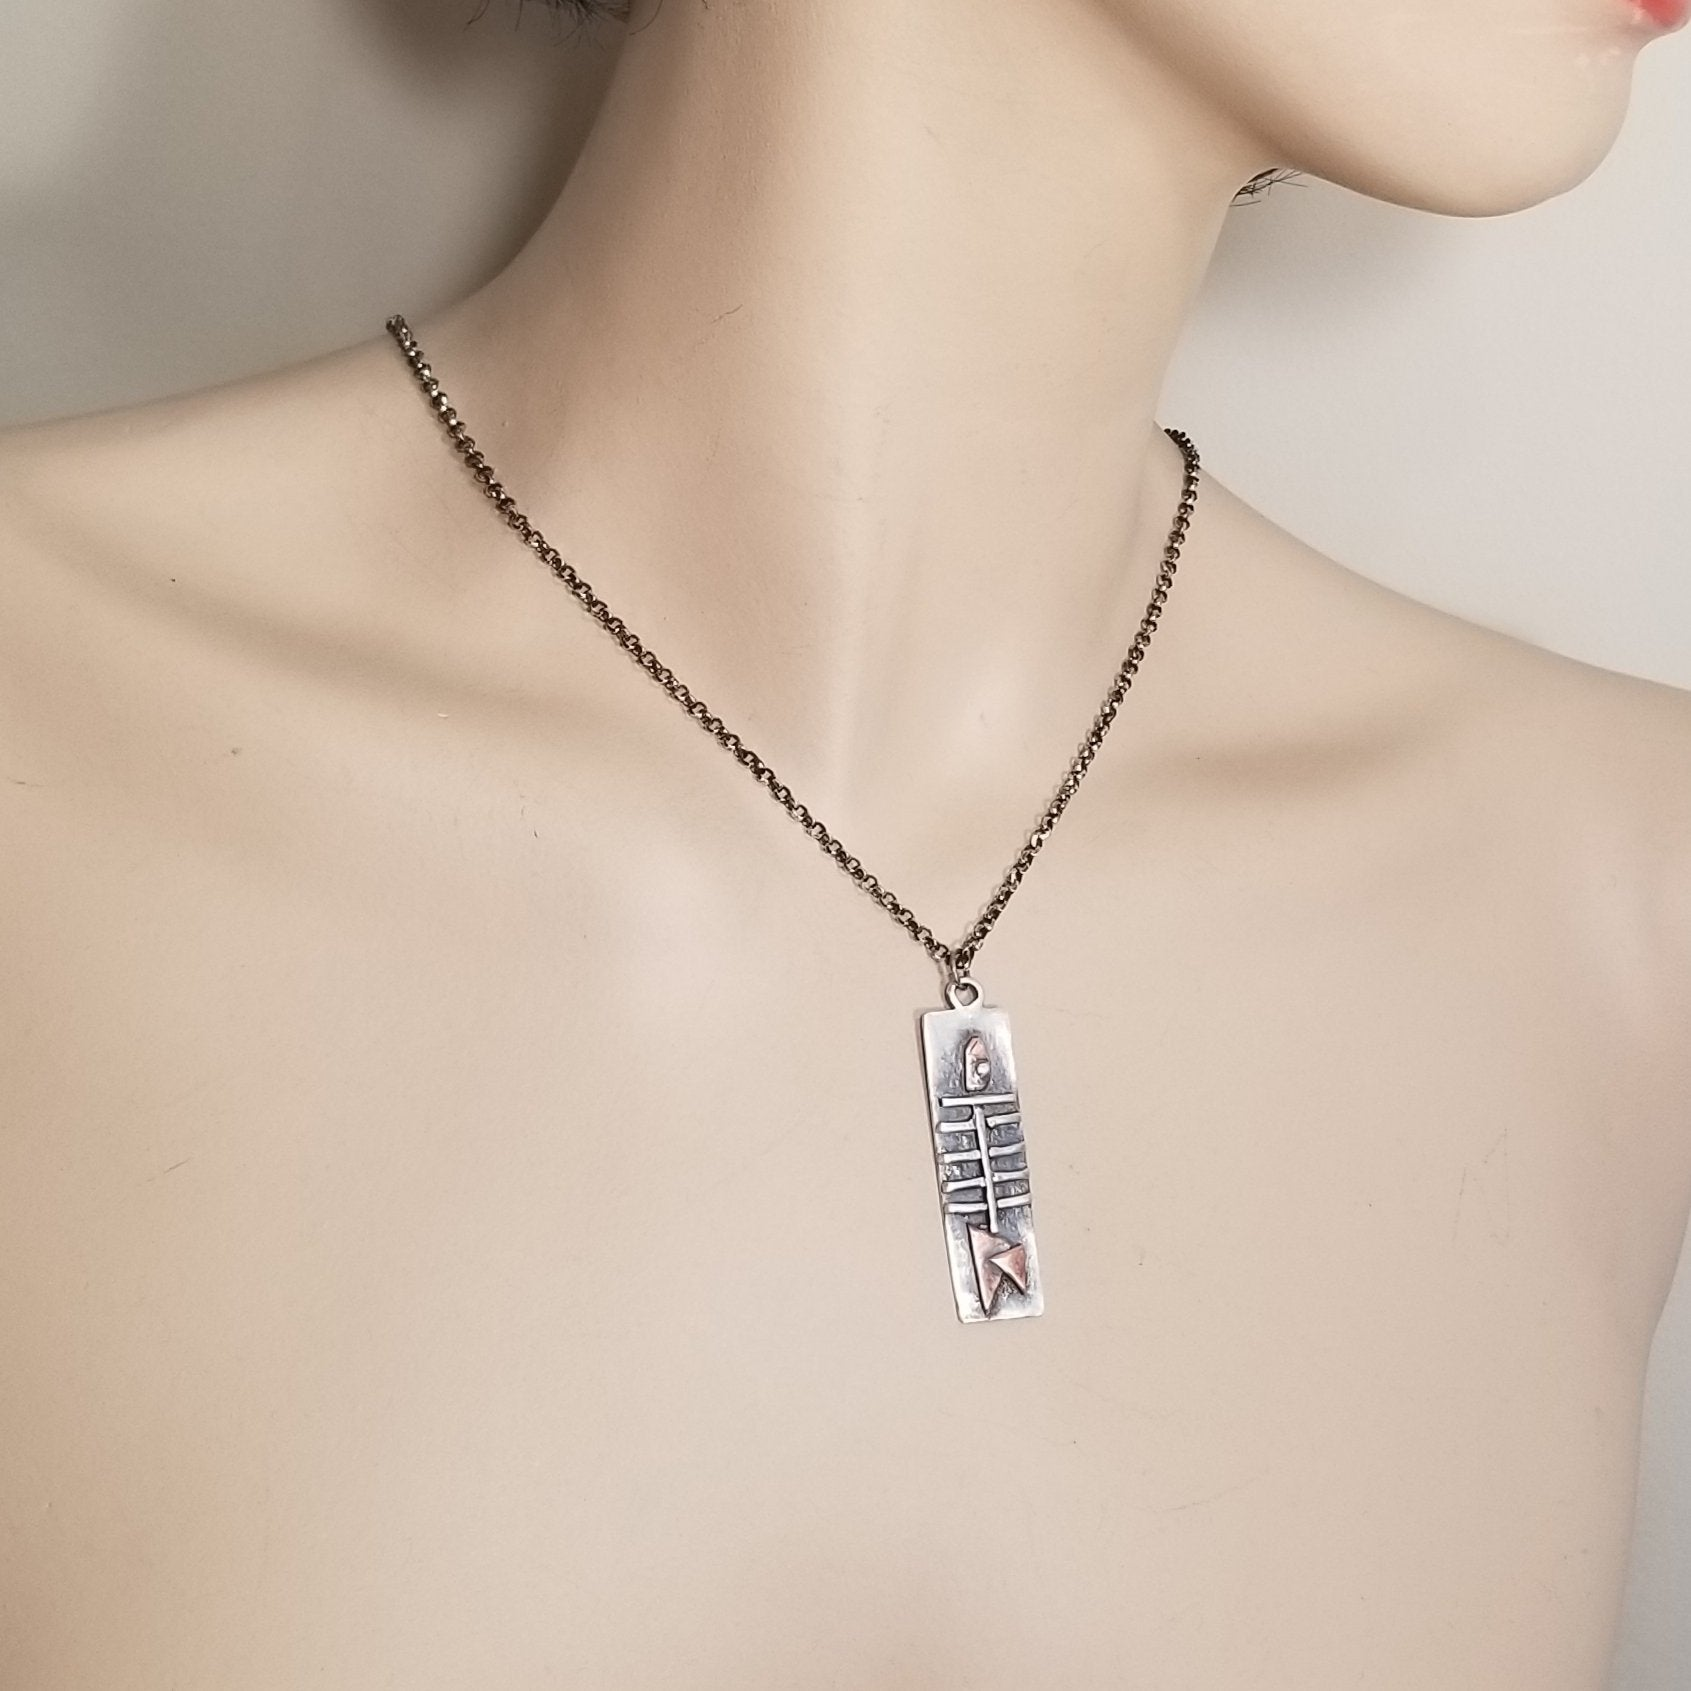 Bone Fish Necklace in Silver and Copper, Repurposed Jewelry